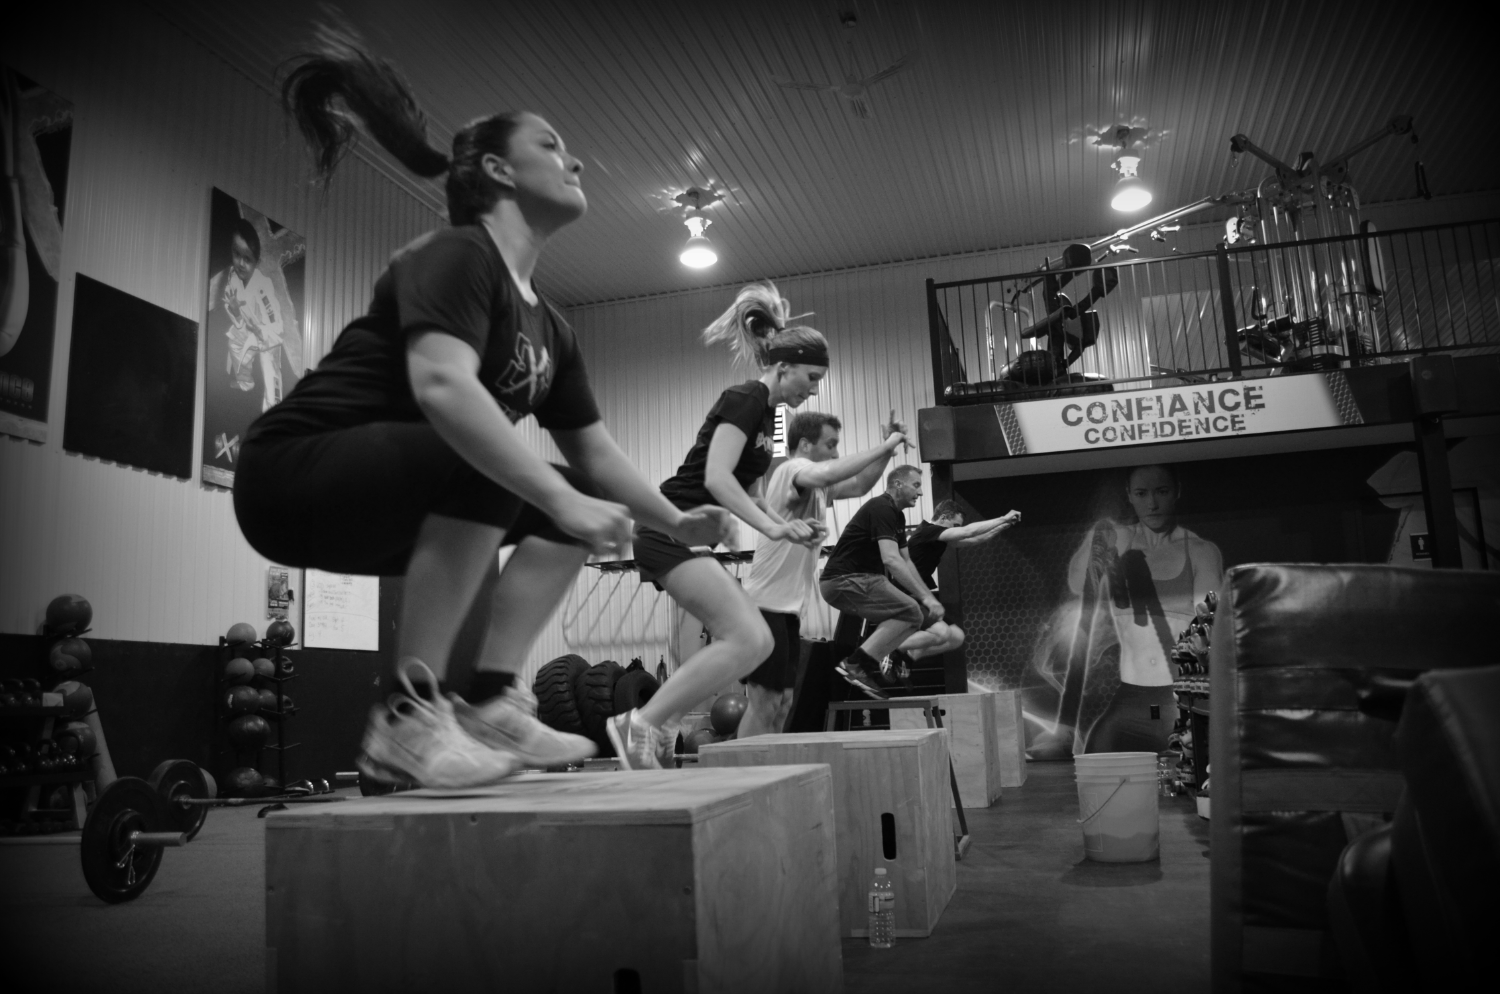 Crossfit Gatineau, XFIT Gatineau, Fitness Gatineau, Fitness Classes Ottawa Gatineau, Functional Fitness Gatineau, Box Jump, Group Fitness, Women's Fitness Training, Lose Weight Gatineau, Lose Weight Ottawa, Personal Training Gatineau, Circuit Training Gatineau, Boot Camp Fitness Gatineau